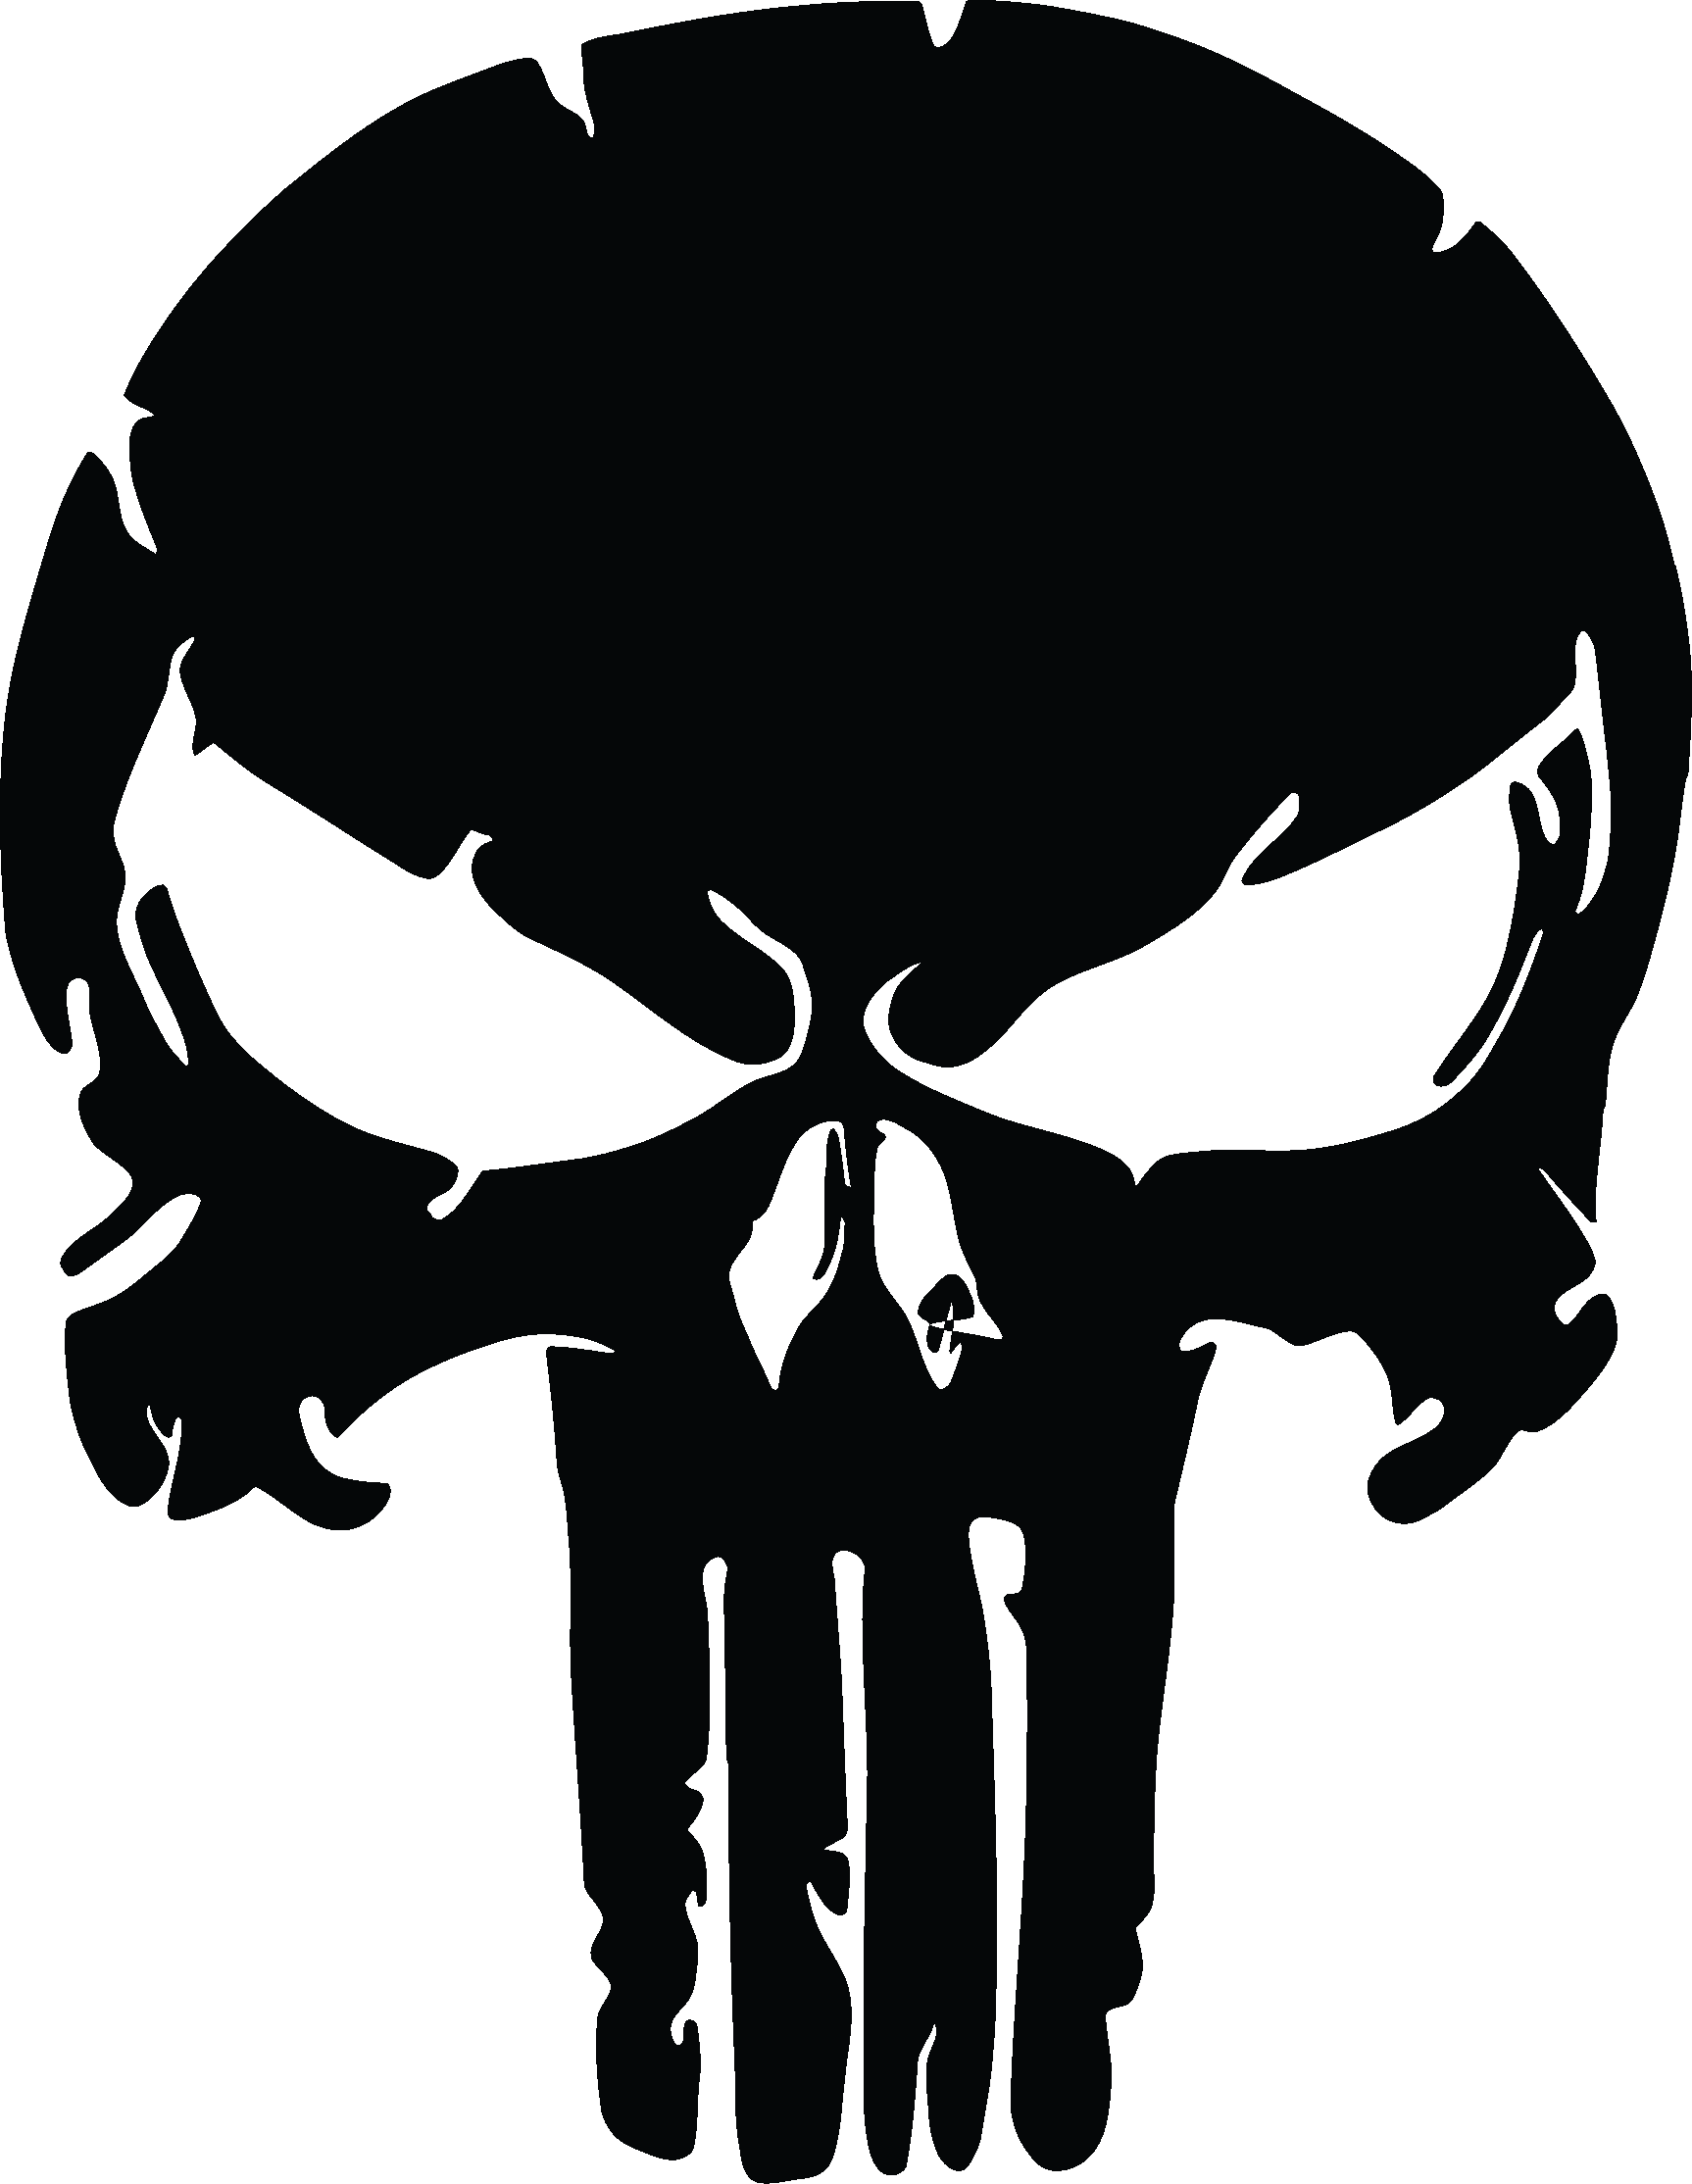 Distressed svg metal. X two the punisher